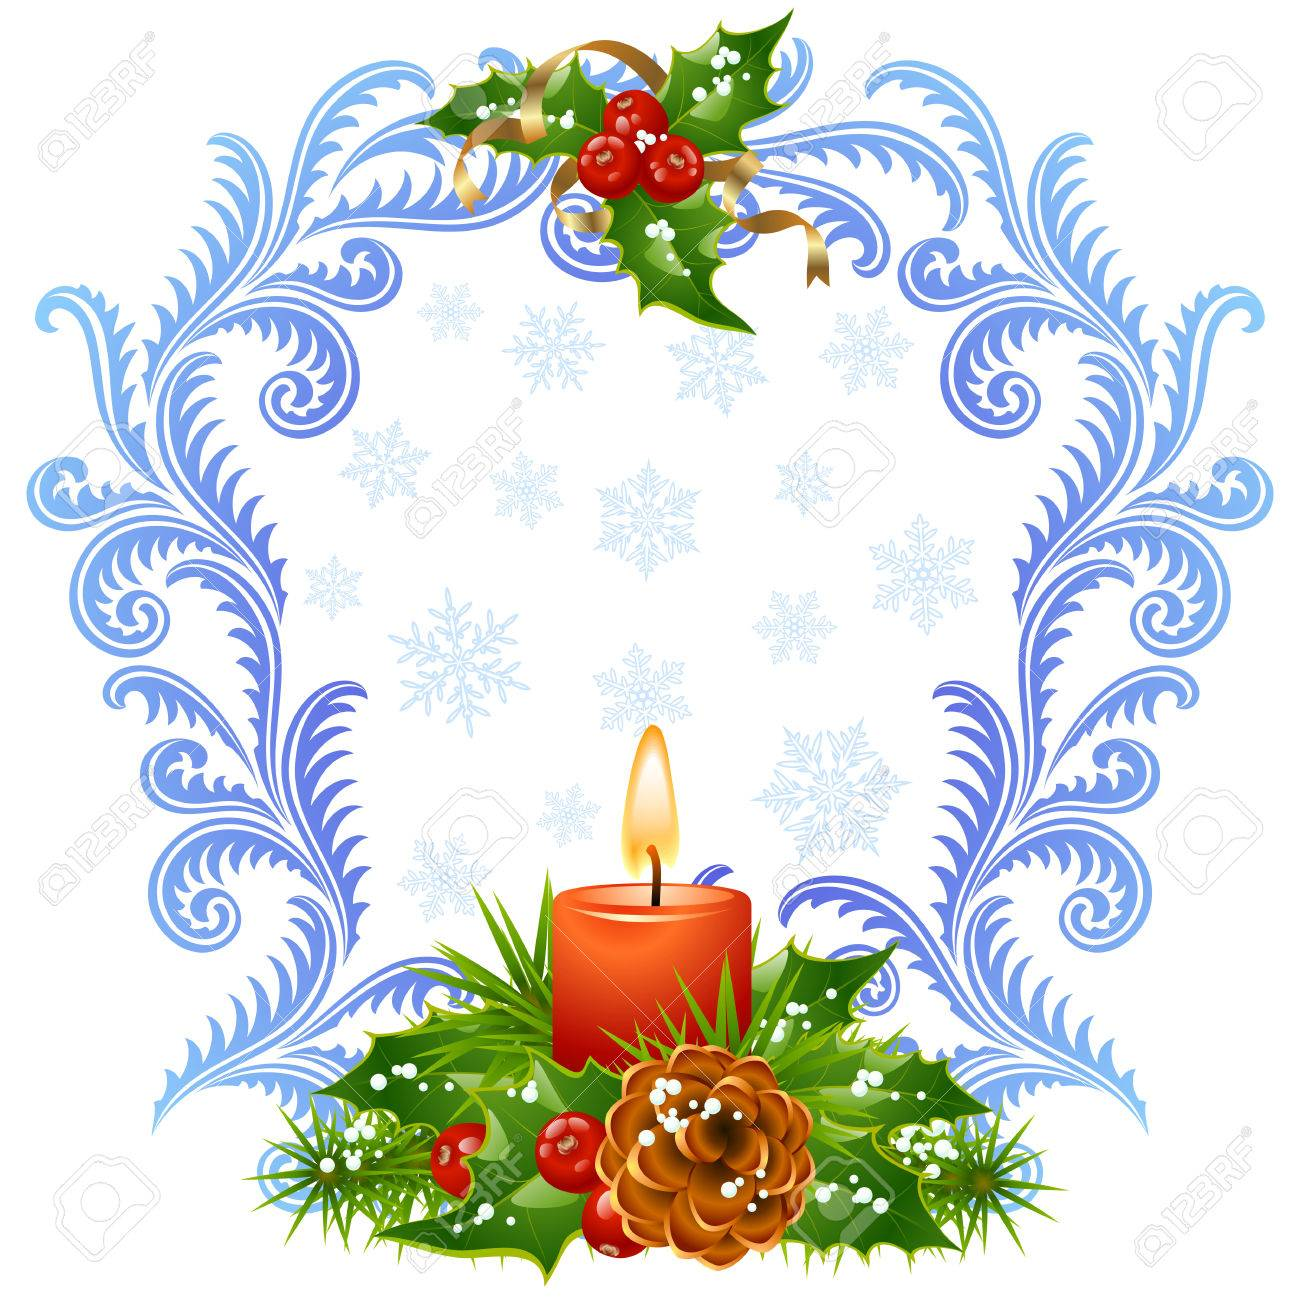 Christmas and New Year greeting card 3. Red candle and holly Stock Vector - 8140920